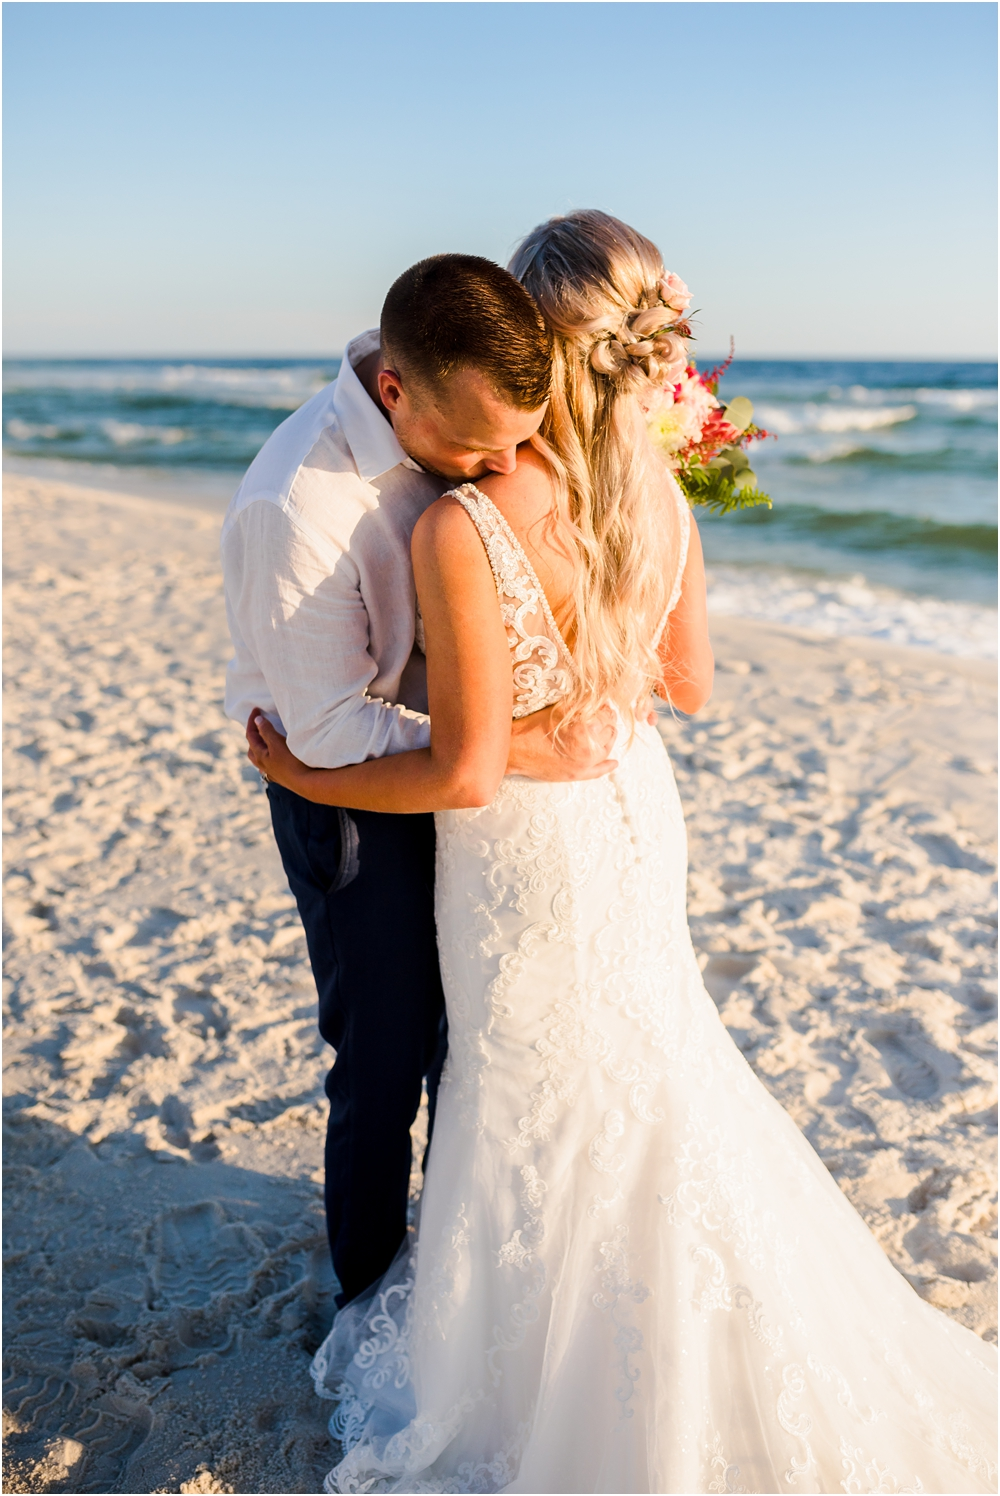 mcglothlin-wedding-kiersten-stevenson-photography-30a-panama-city-beach-dothan-tallahassee-(97-of-145).jpg